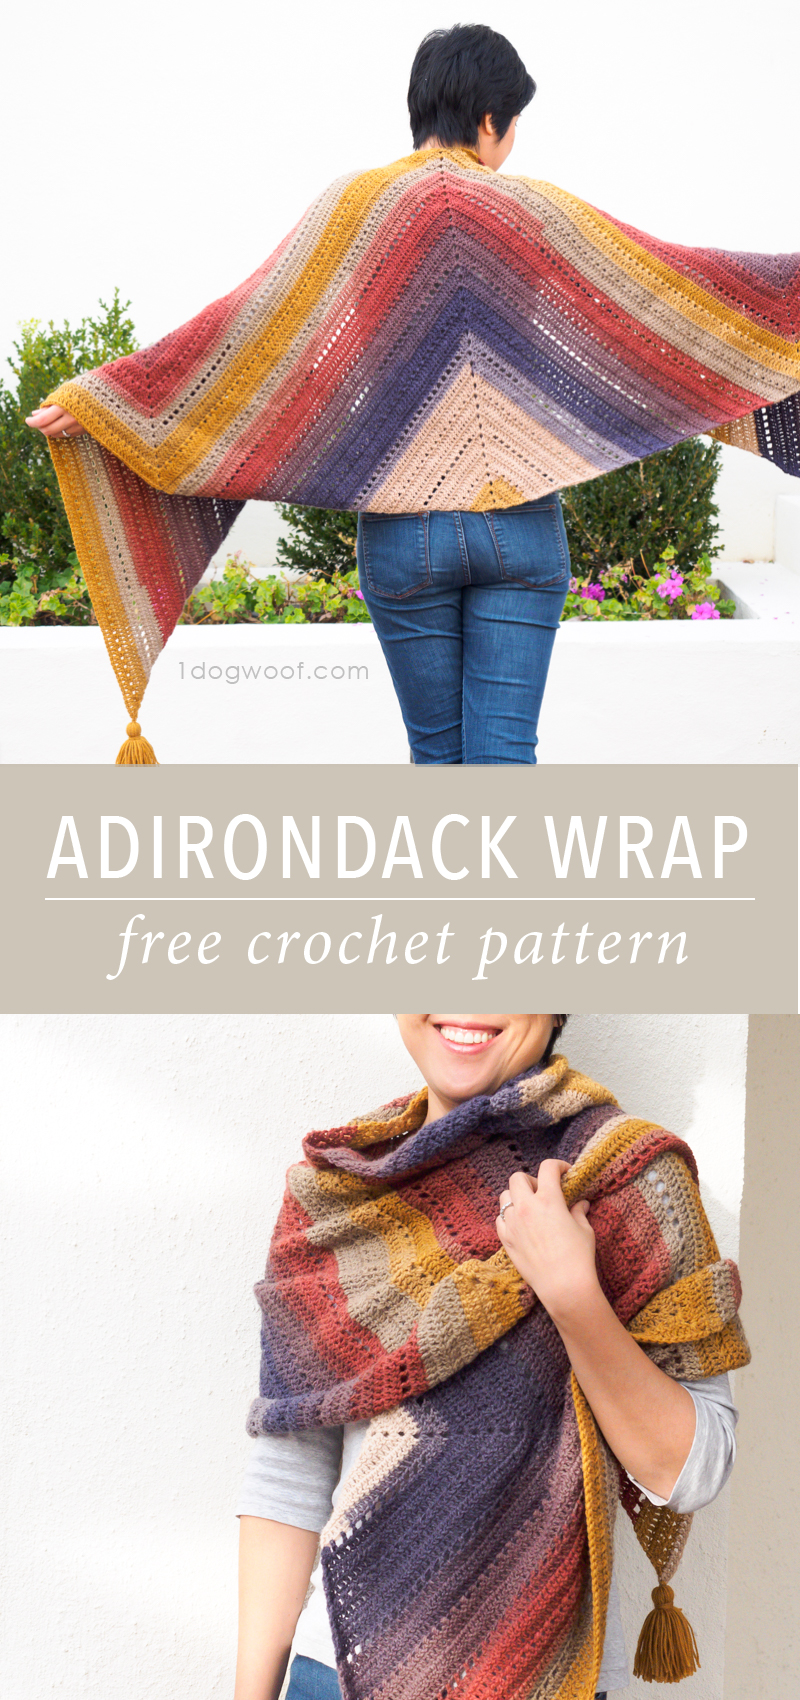 The Adirondack Wrap Crochet Pattern One Dog Woof